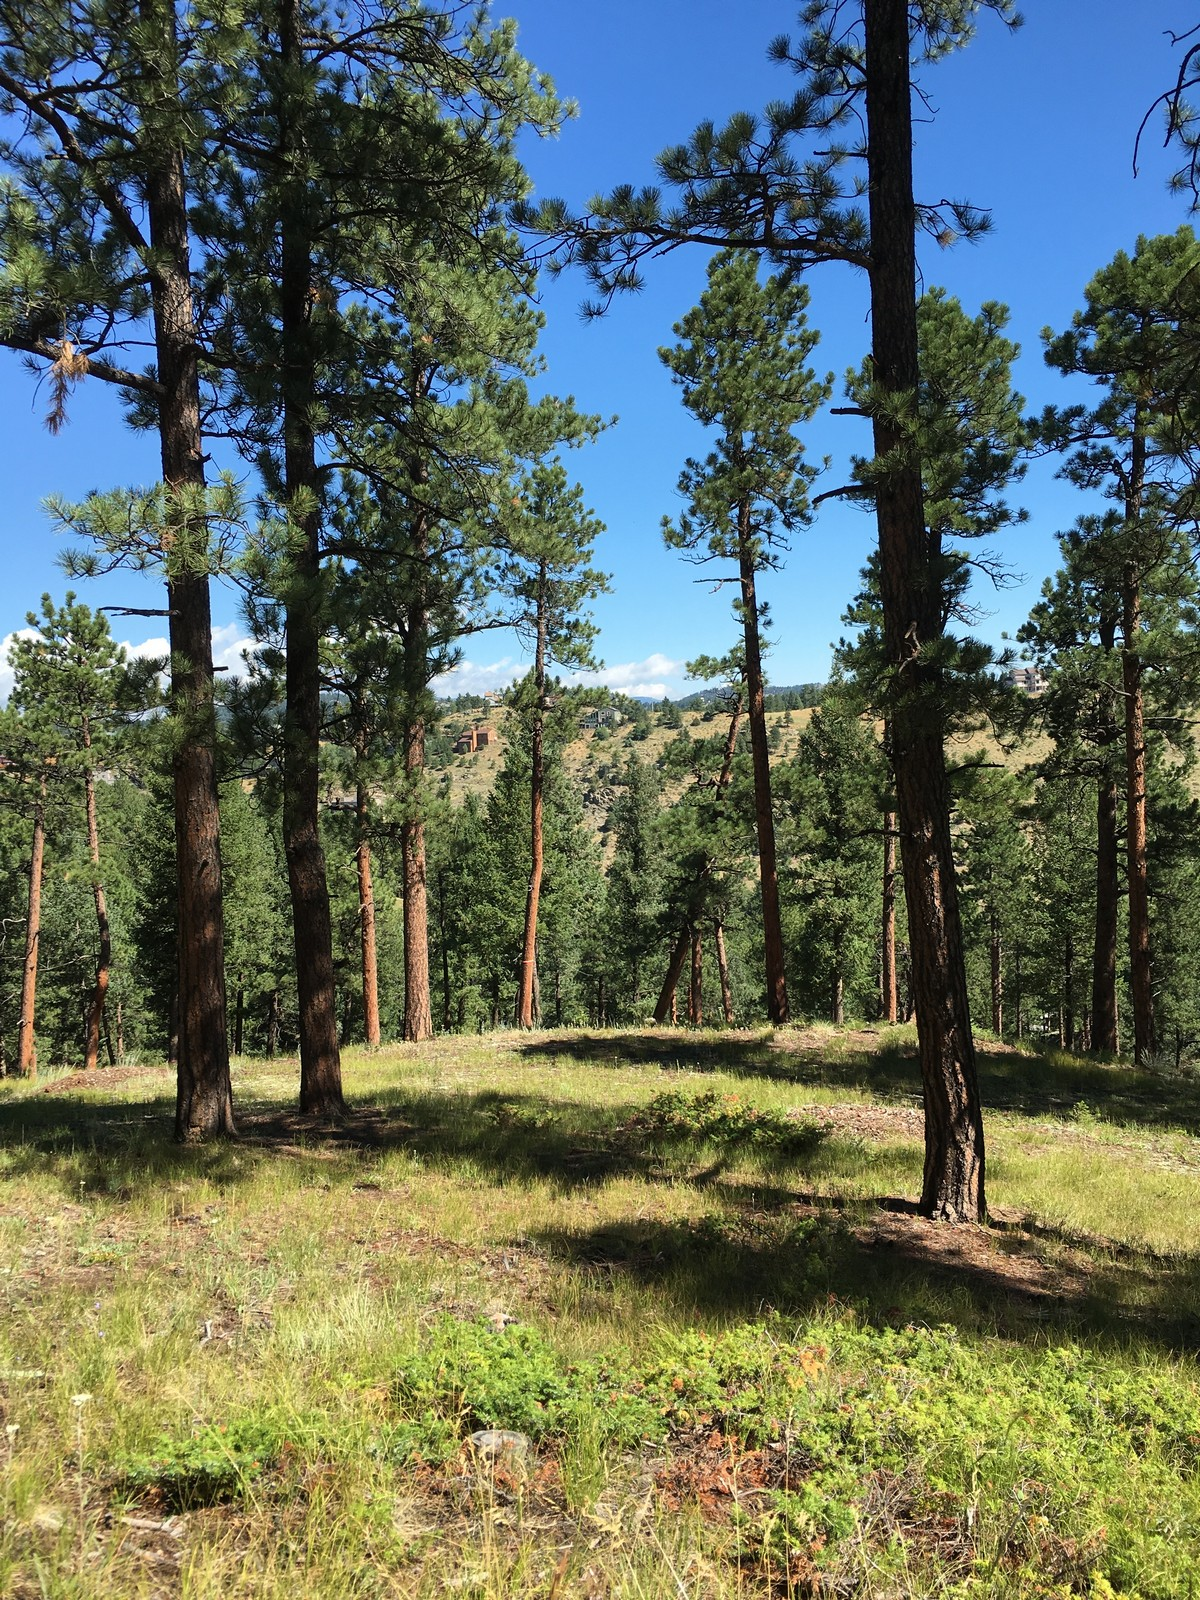 One of the last great land opportunities in Evergreen 3325 Timbergate Trail Evergreen, Colorado 80439 Estados Unidos